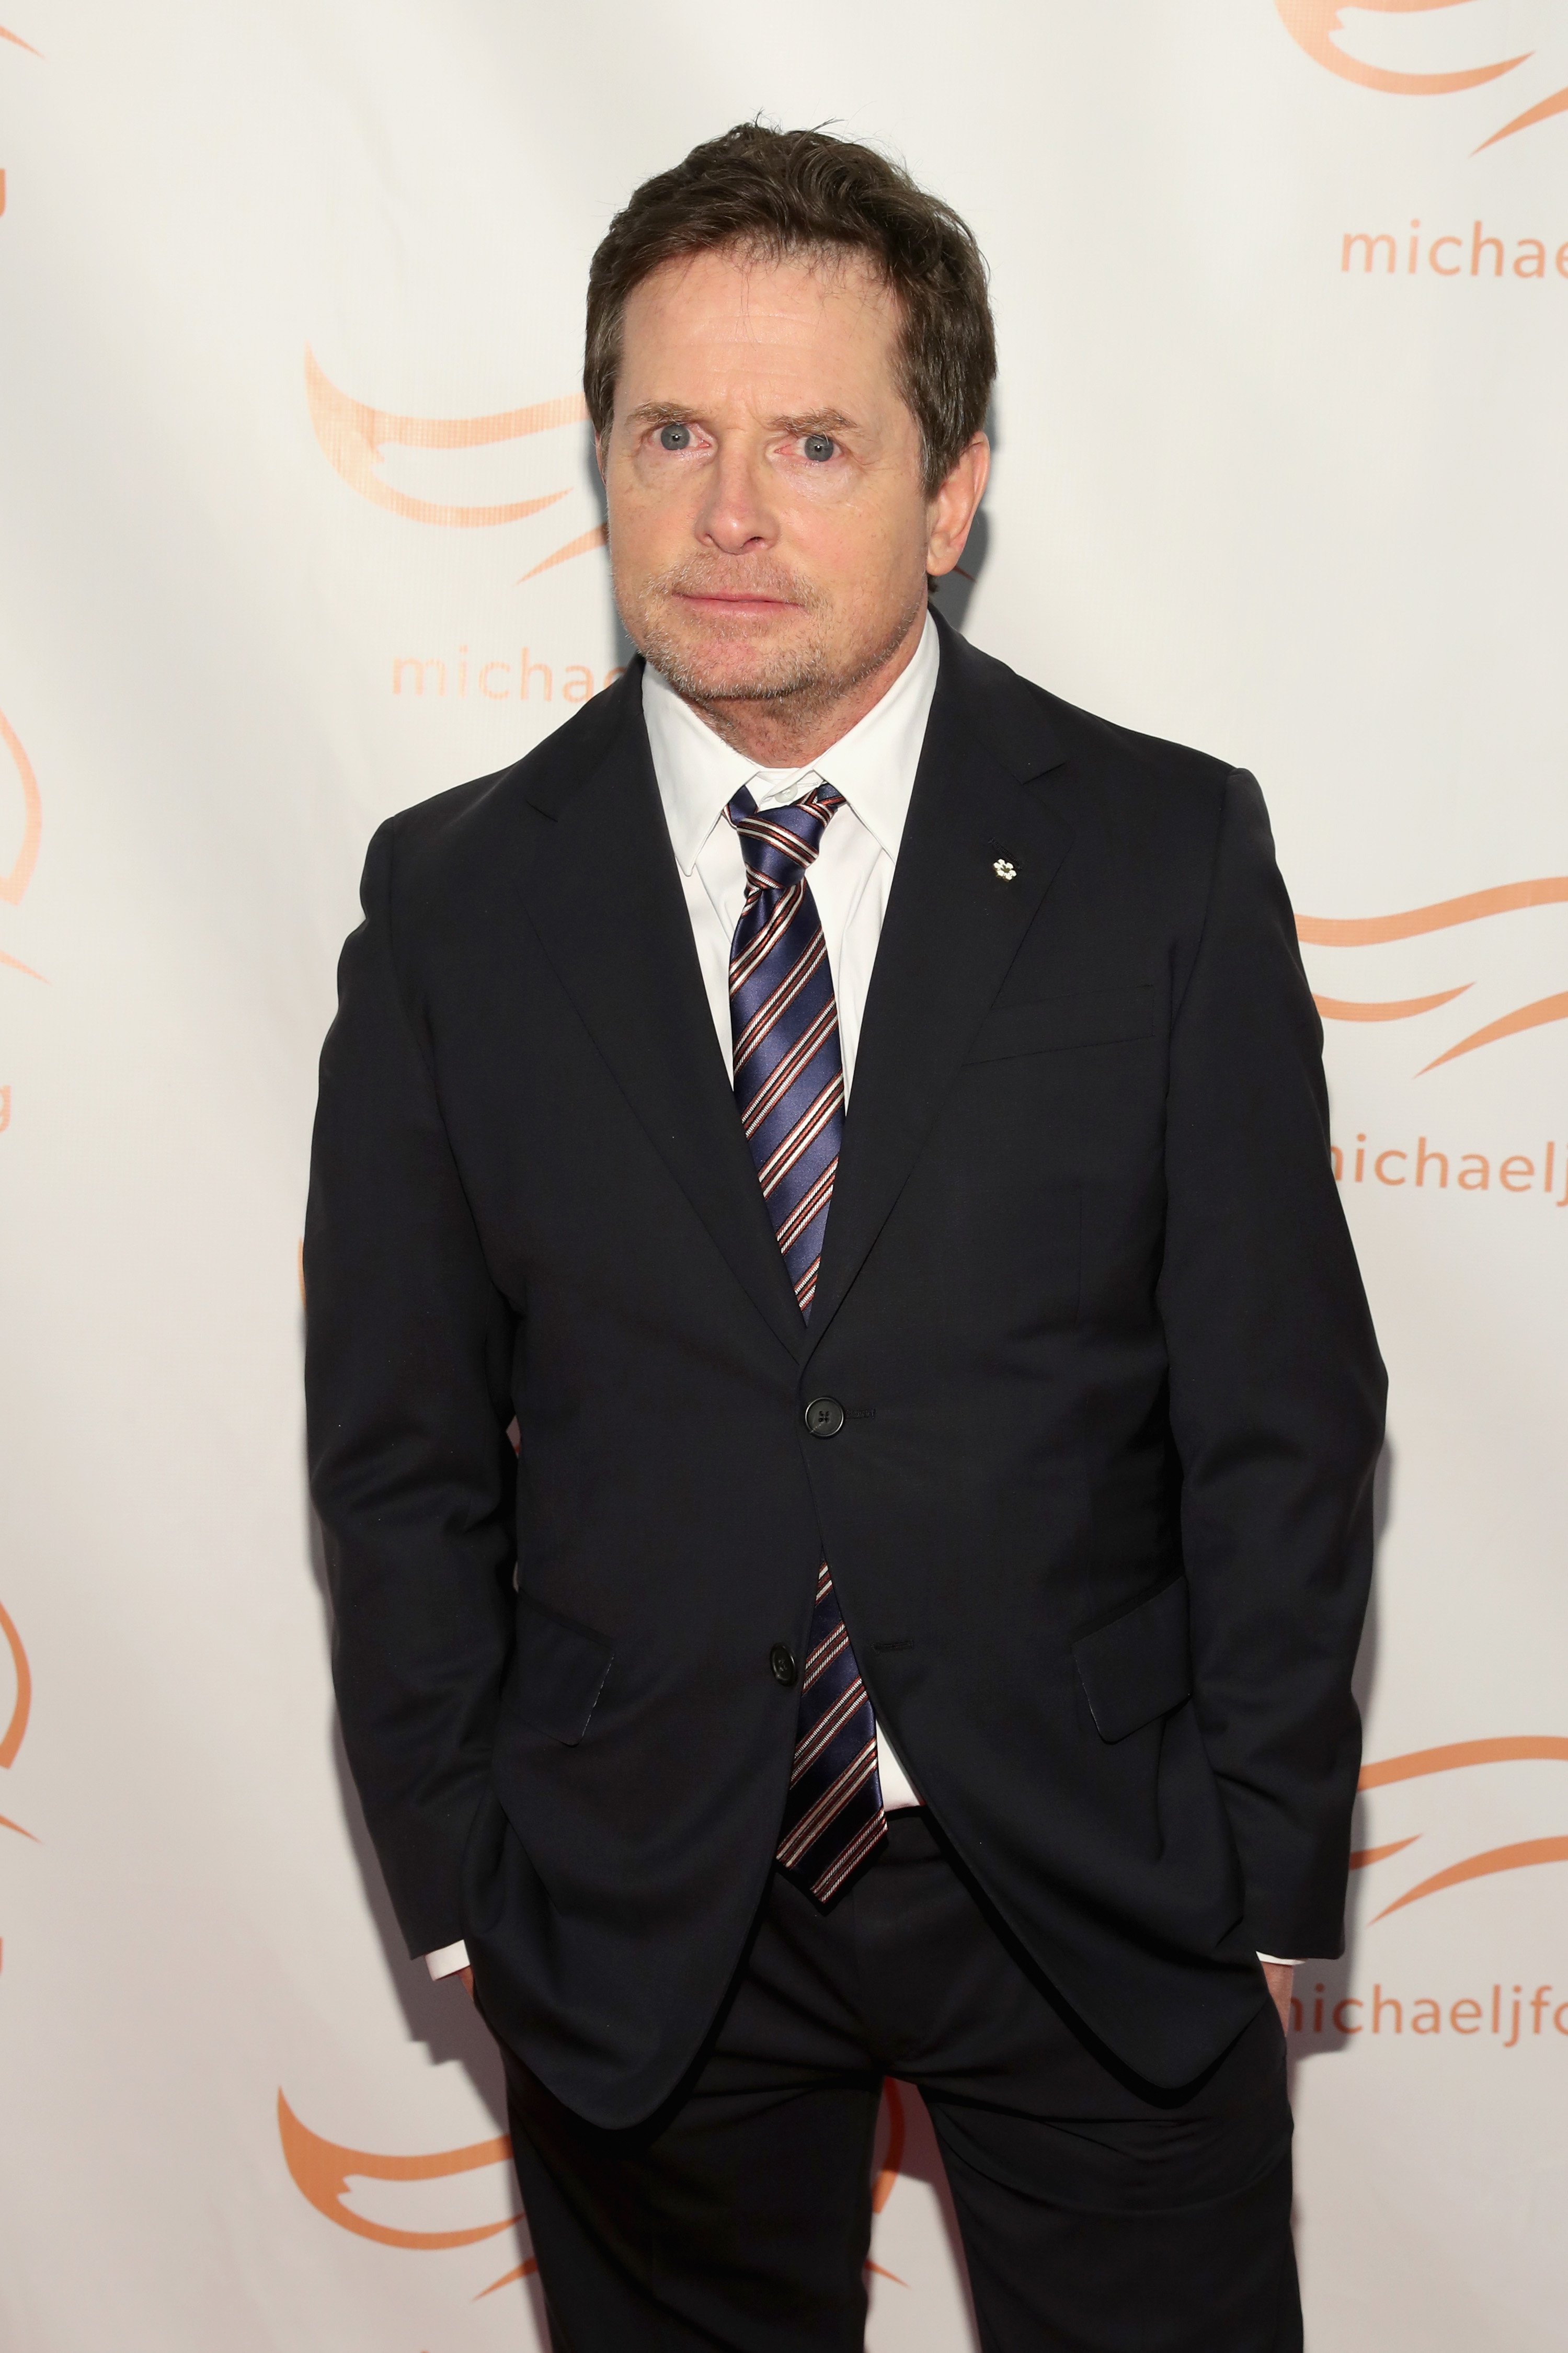 Michael J. Fox on the red carpet of A Funny Thing Happened On The Way To Cure Parkinson's benefitting The Michael J. Fox Foundation at the Hilton New York on November 10, 2018.   Source: Getty Images